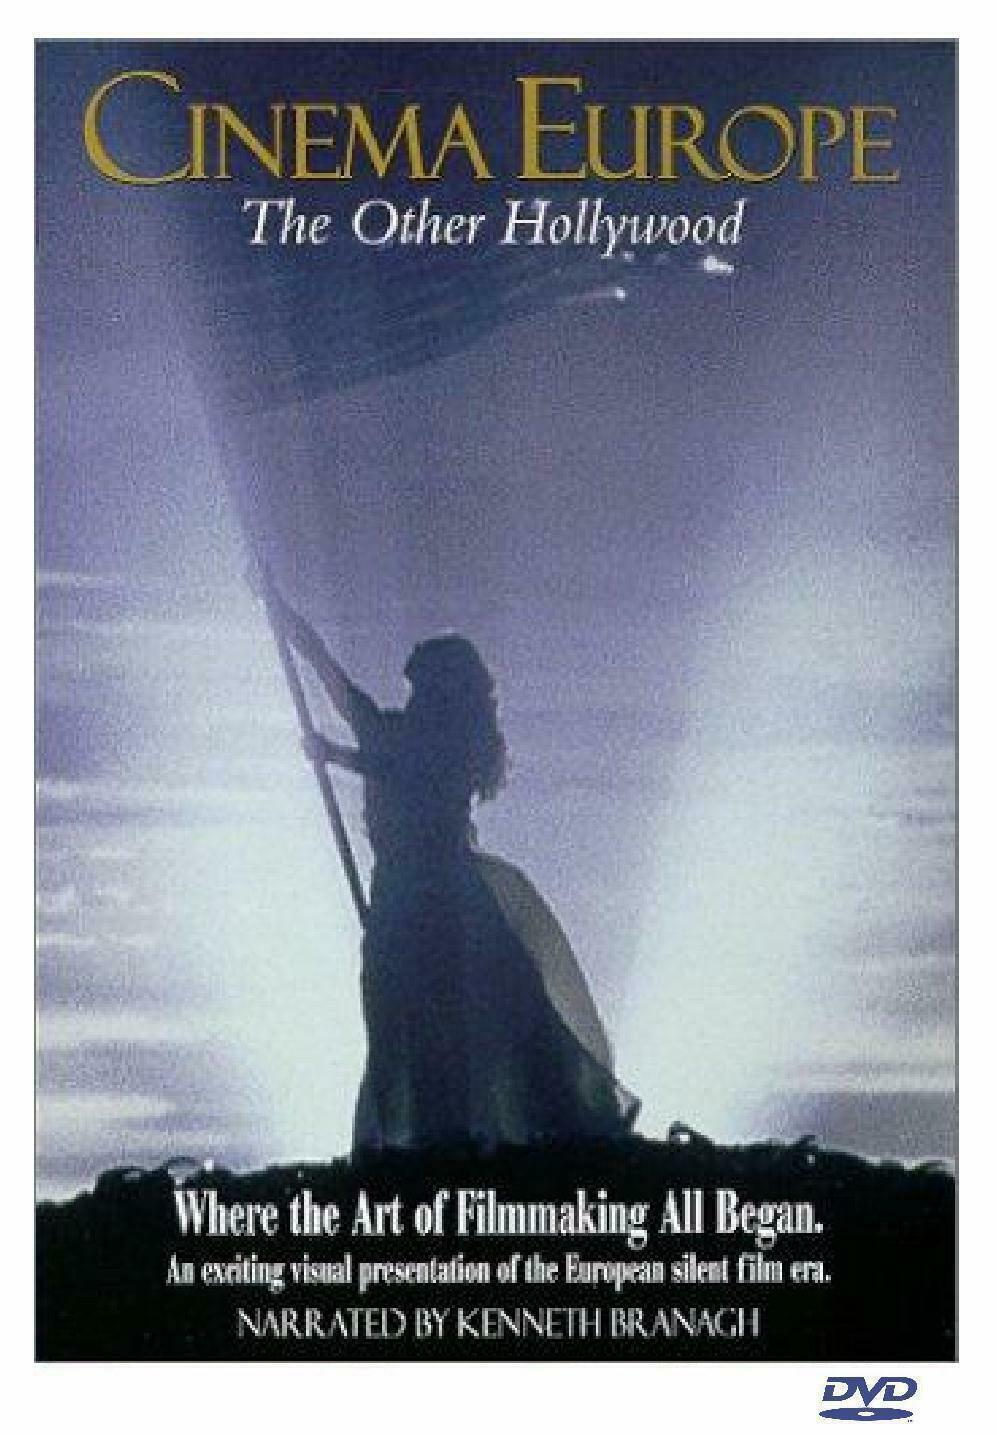 Cinema Europe: The Other Hollywood 1995 - Kenneth Branagh - DOUBLE ALL REG DVD